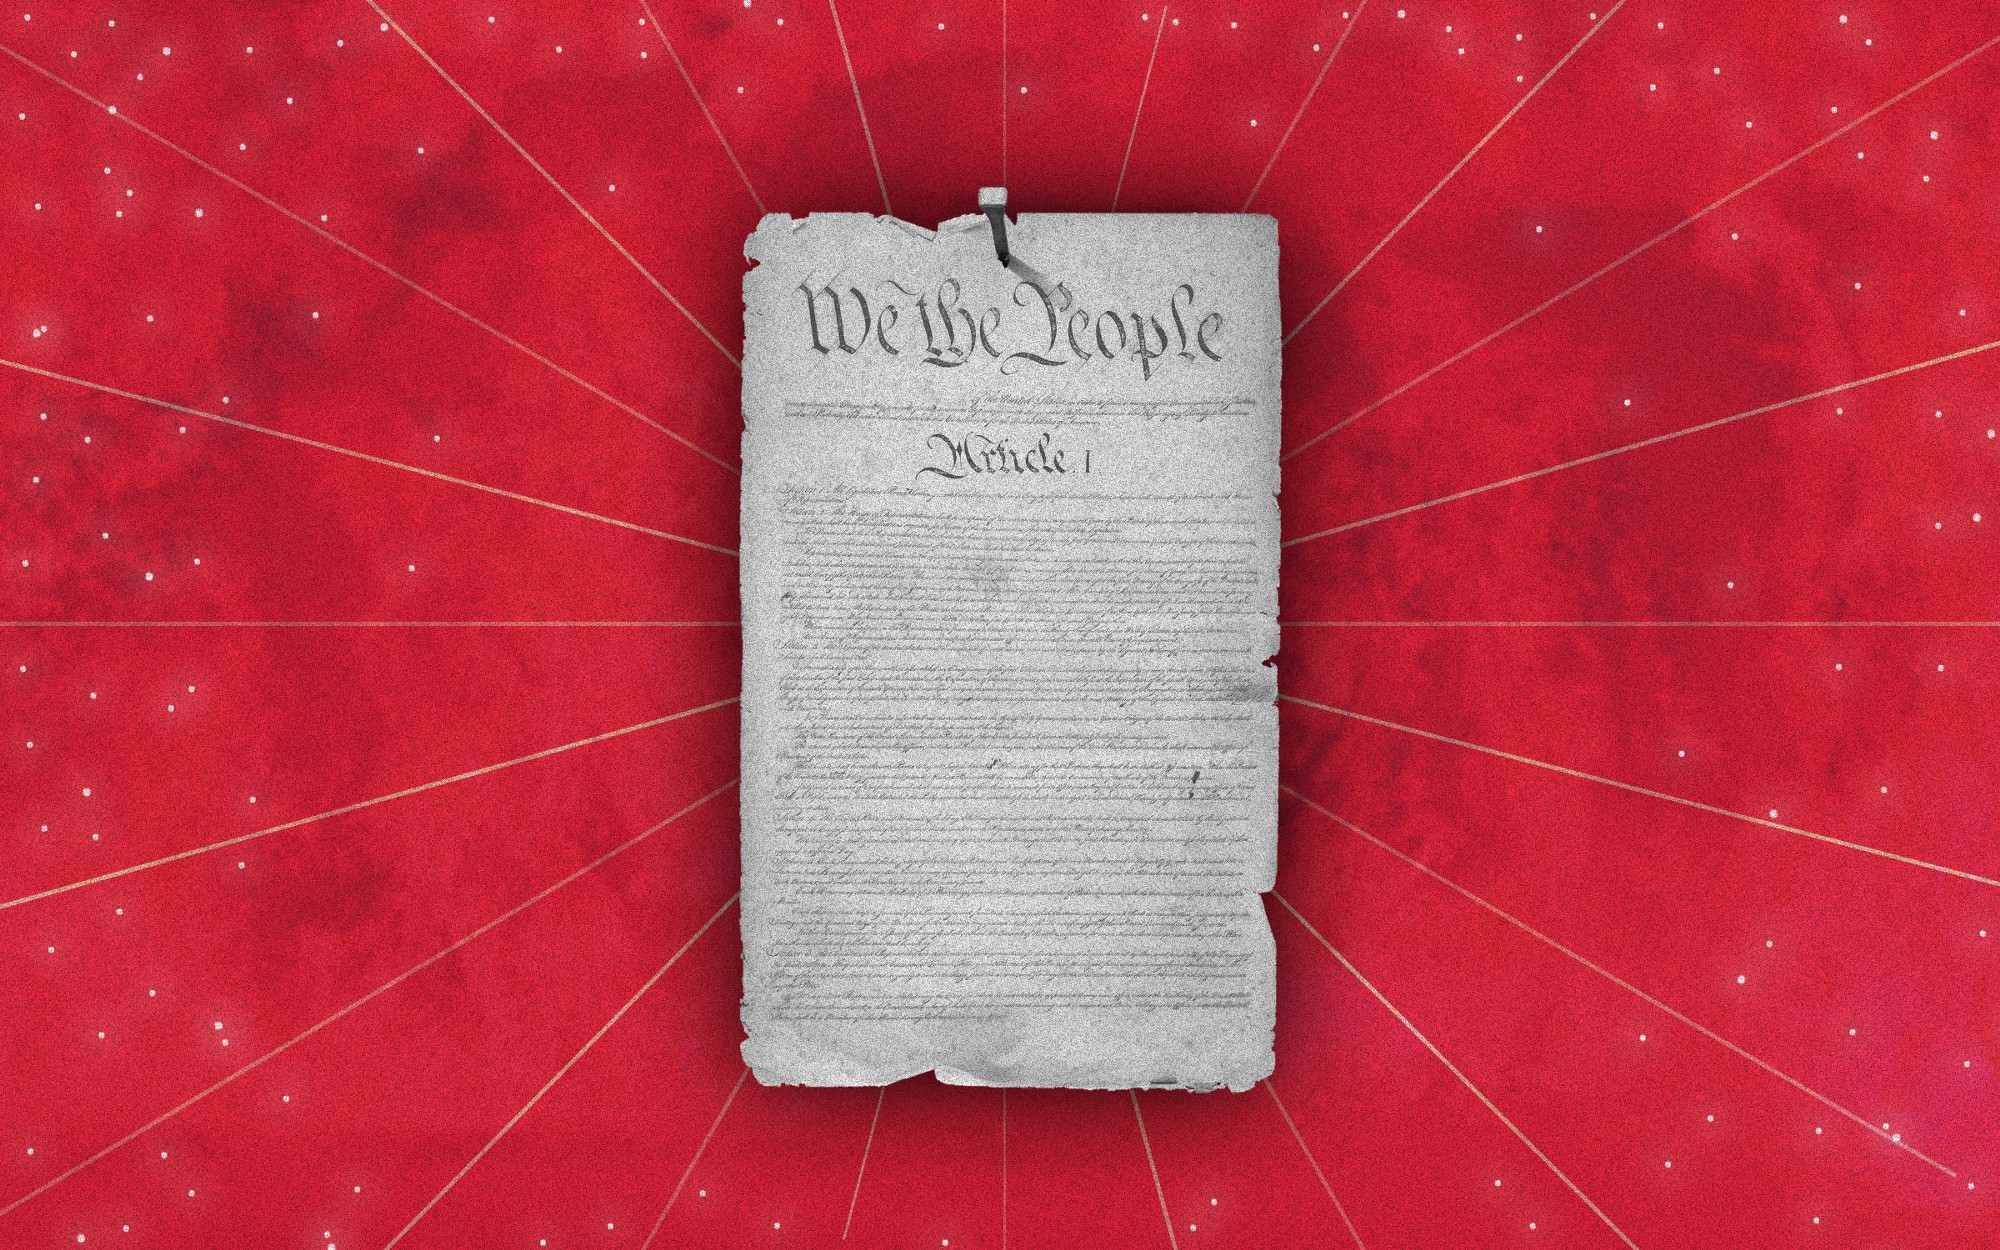 A photo illustration of the Declaration of Independence over a red background that looks like the night sky with stars.